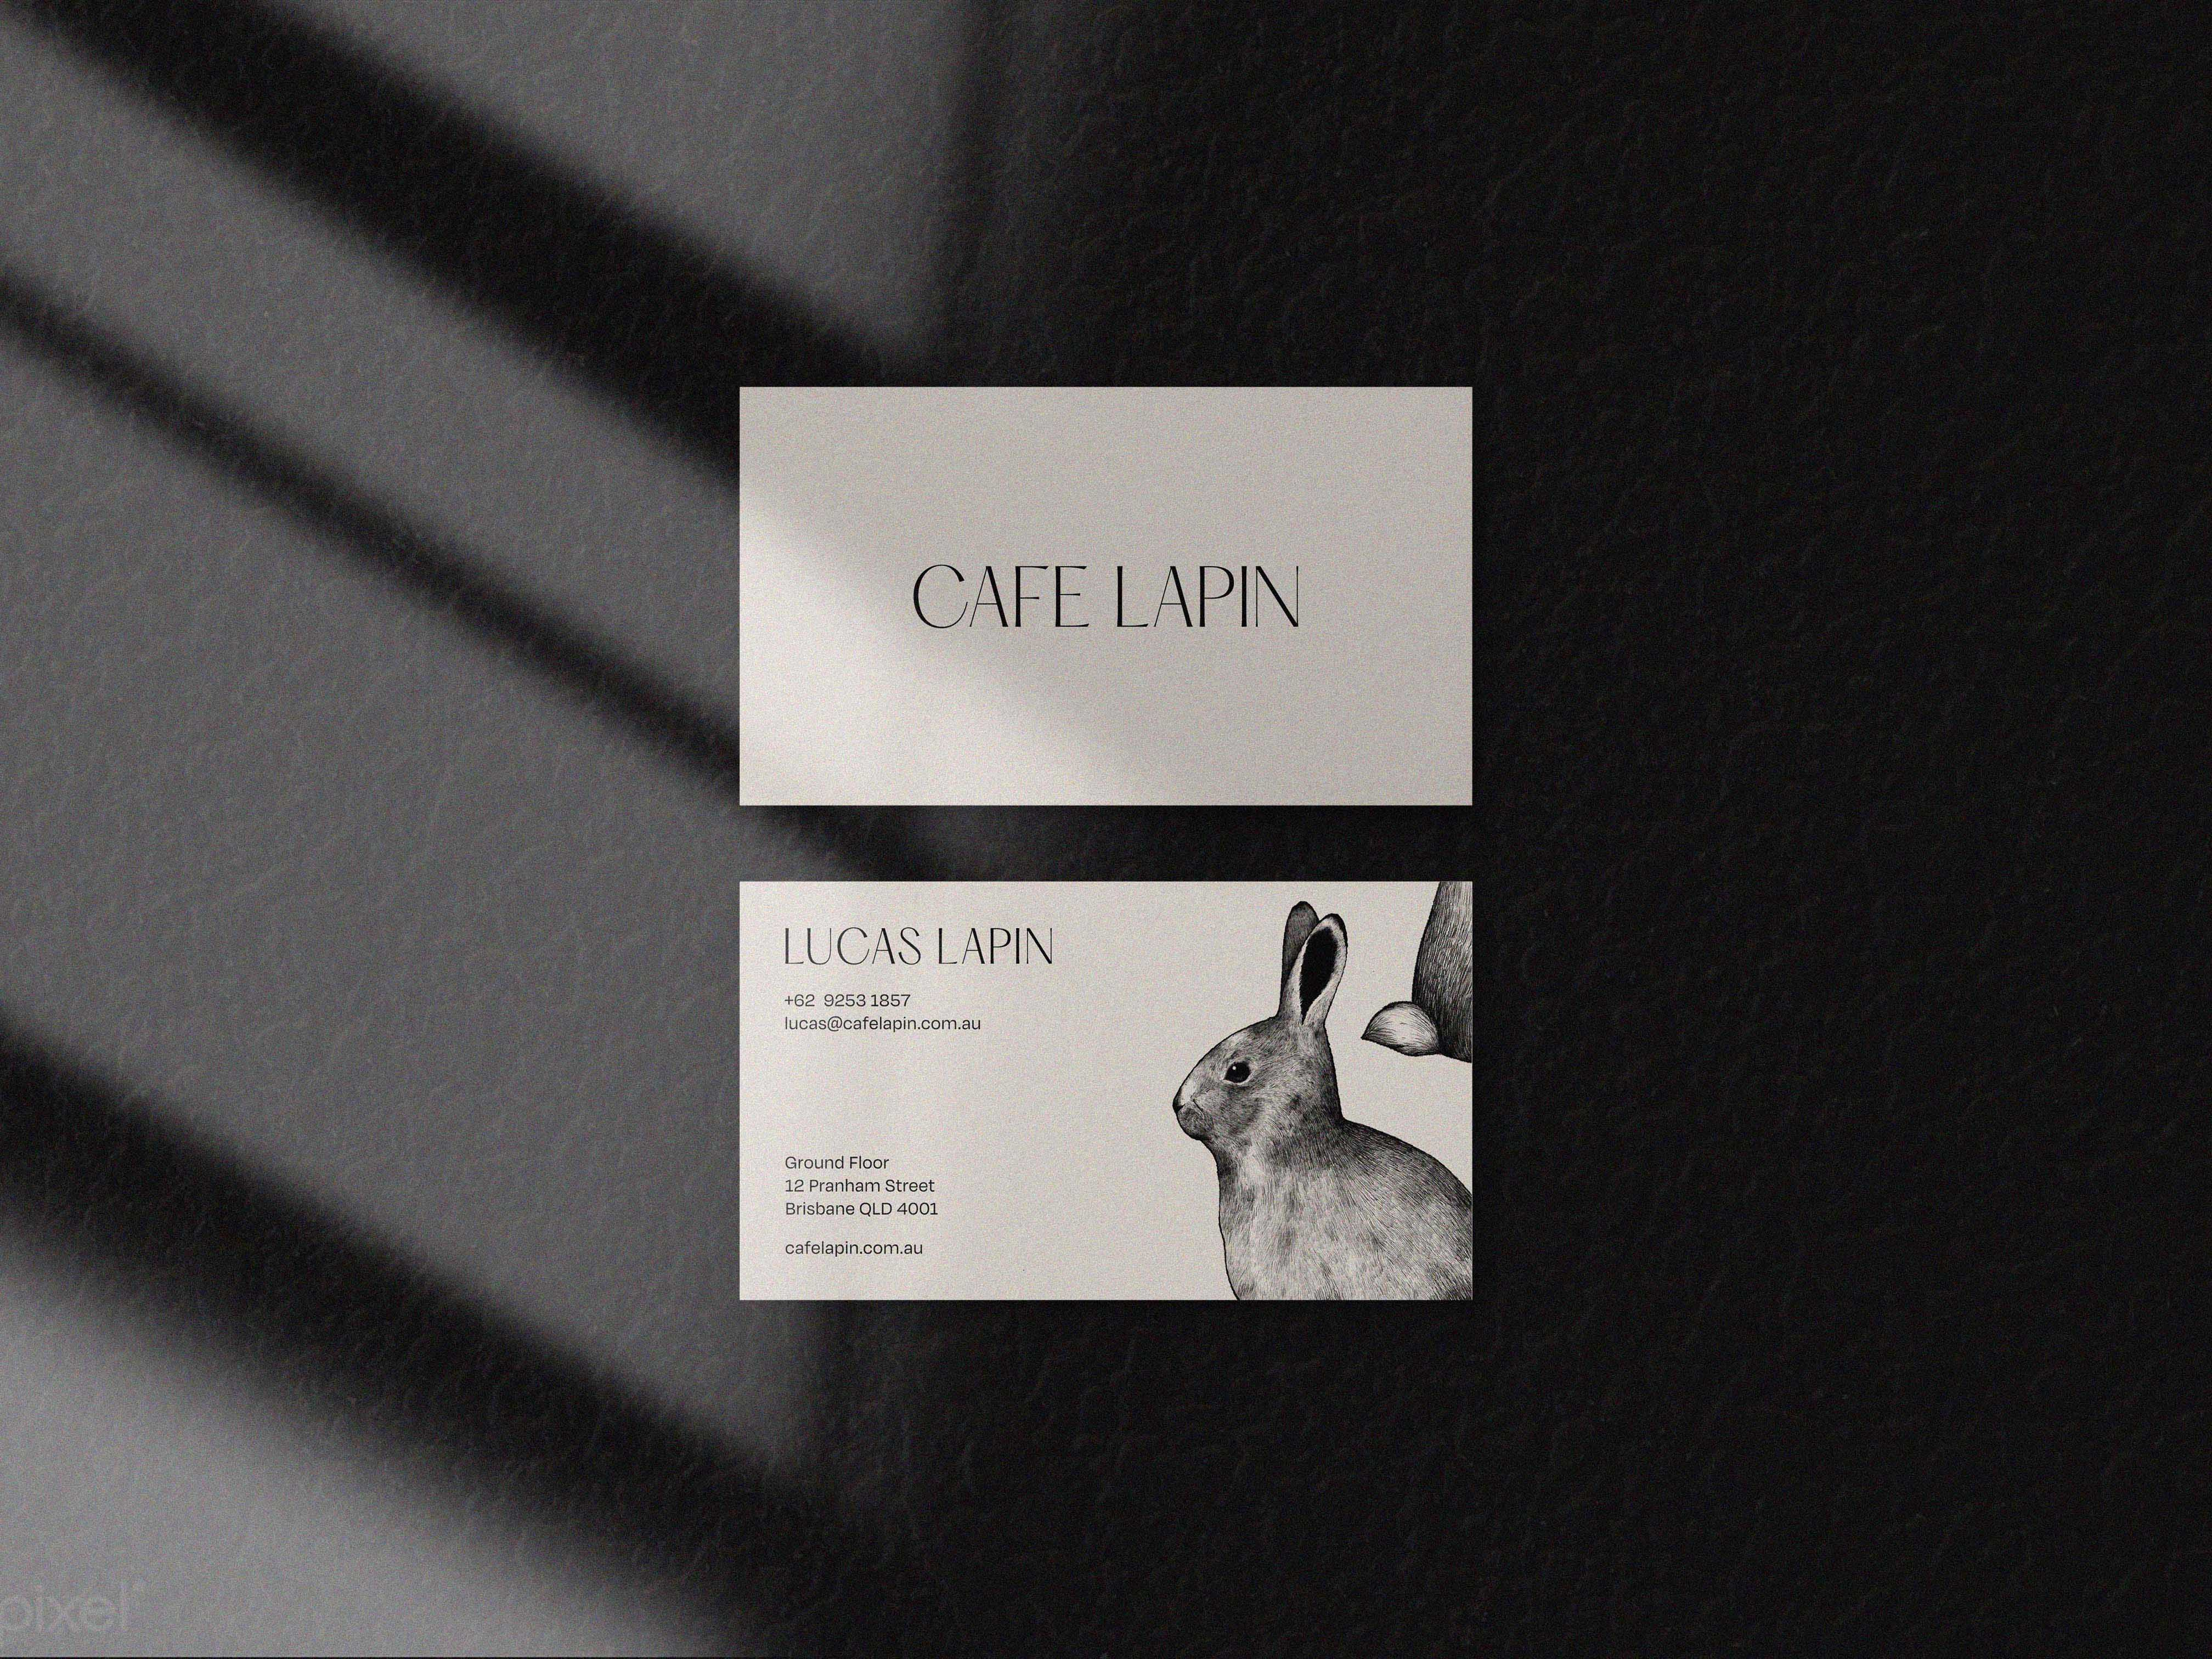 Cafe Lapin Branding for French-inspired Cafe Based in Australia by Oak Studio